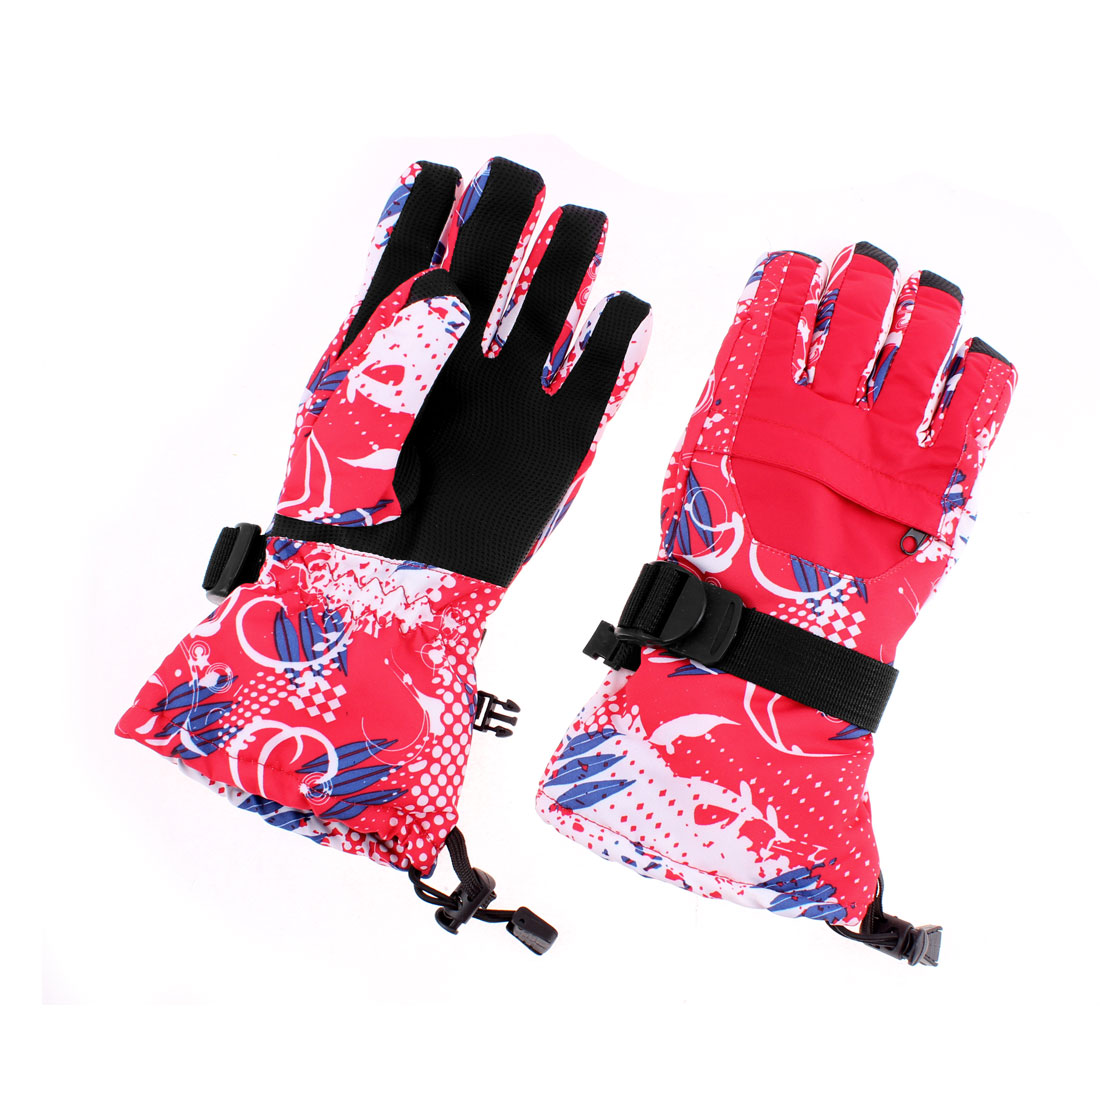 Men Winter Outdoor Snow Ski Snowboard Full Finger Gloves Red XL Pair